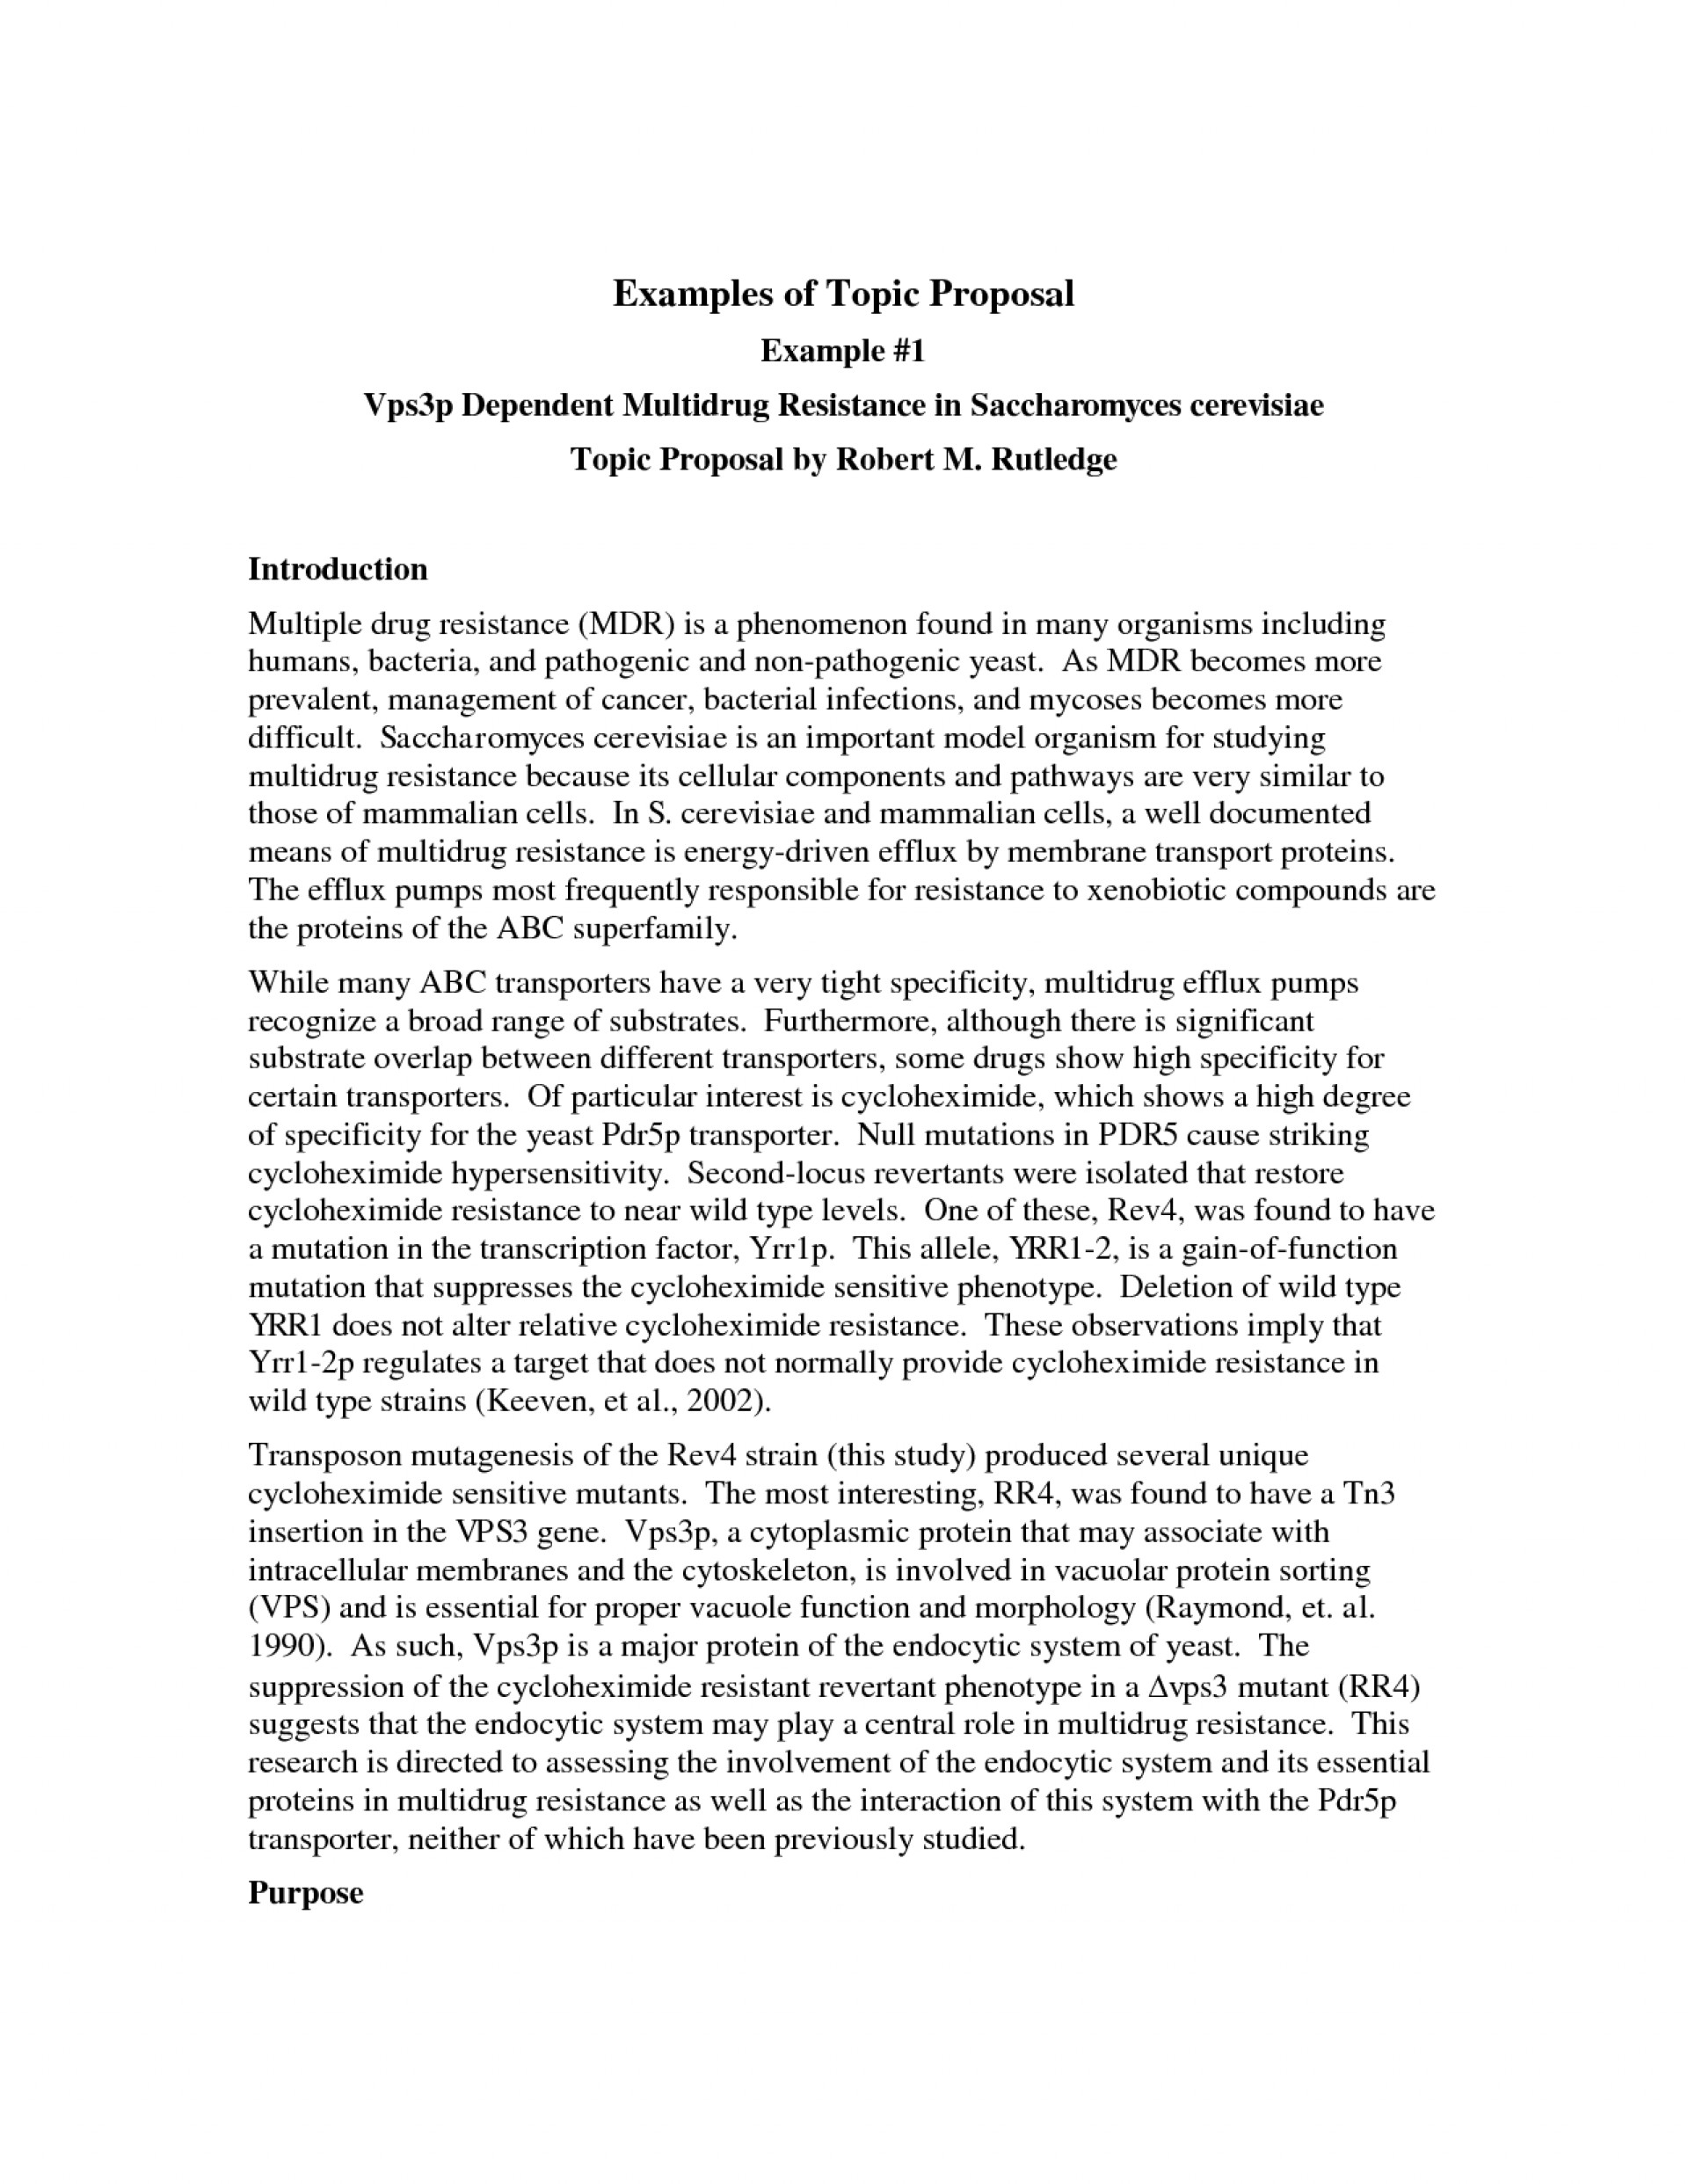 Proposal essay topics examples